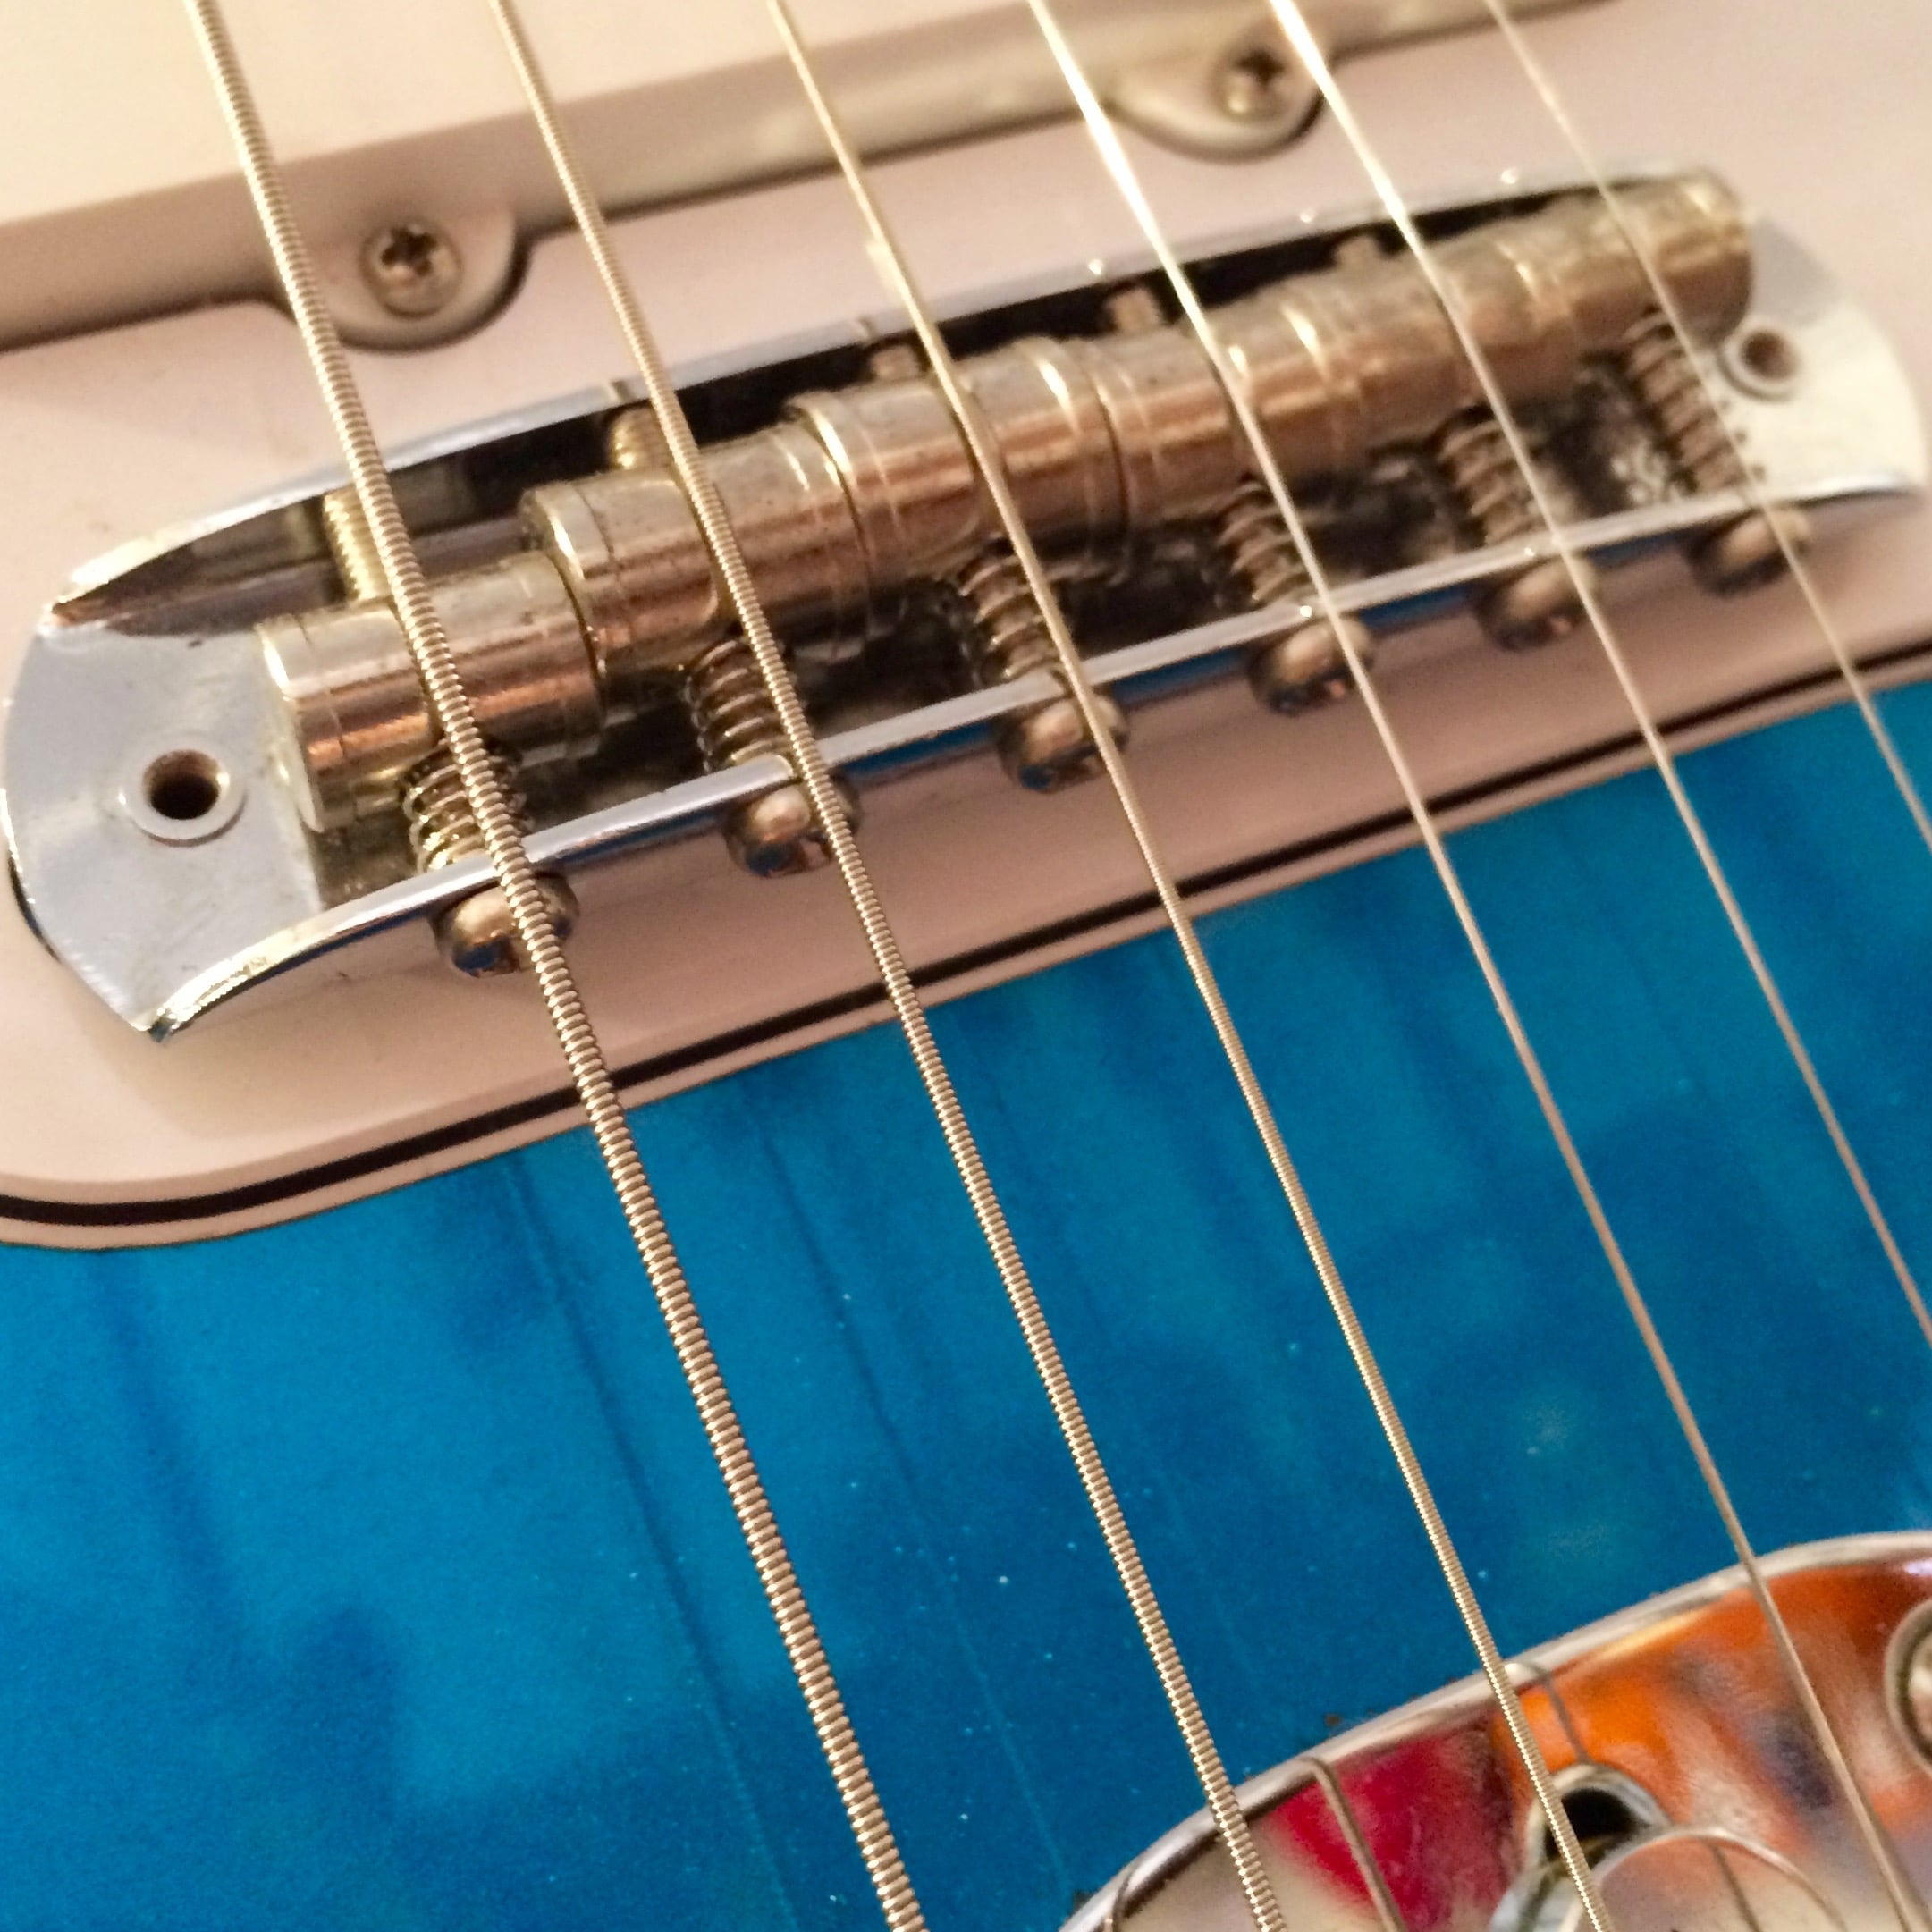 Mustang bridge - intonation by adjusting screws at rear